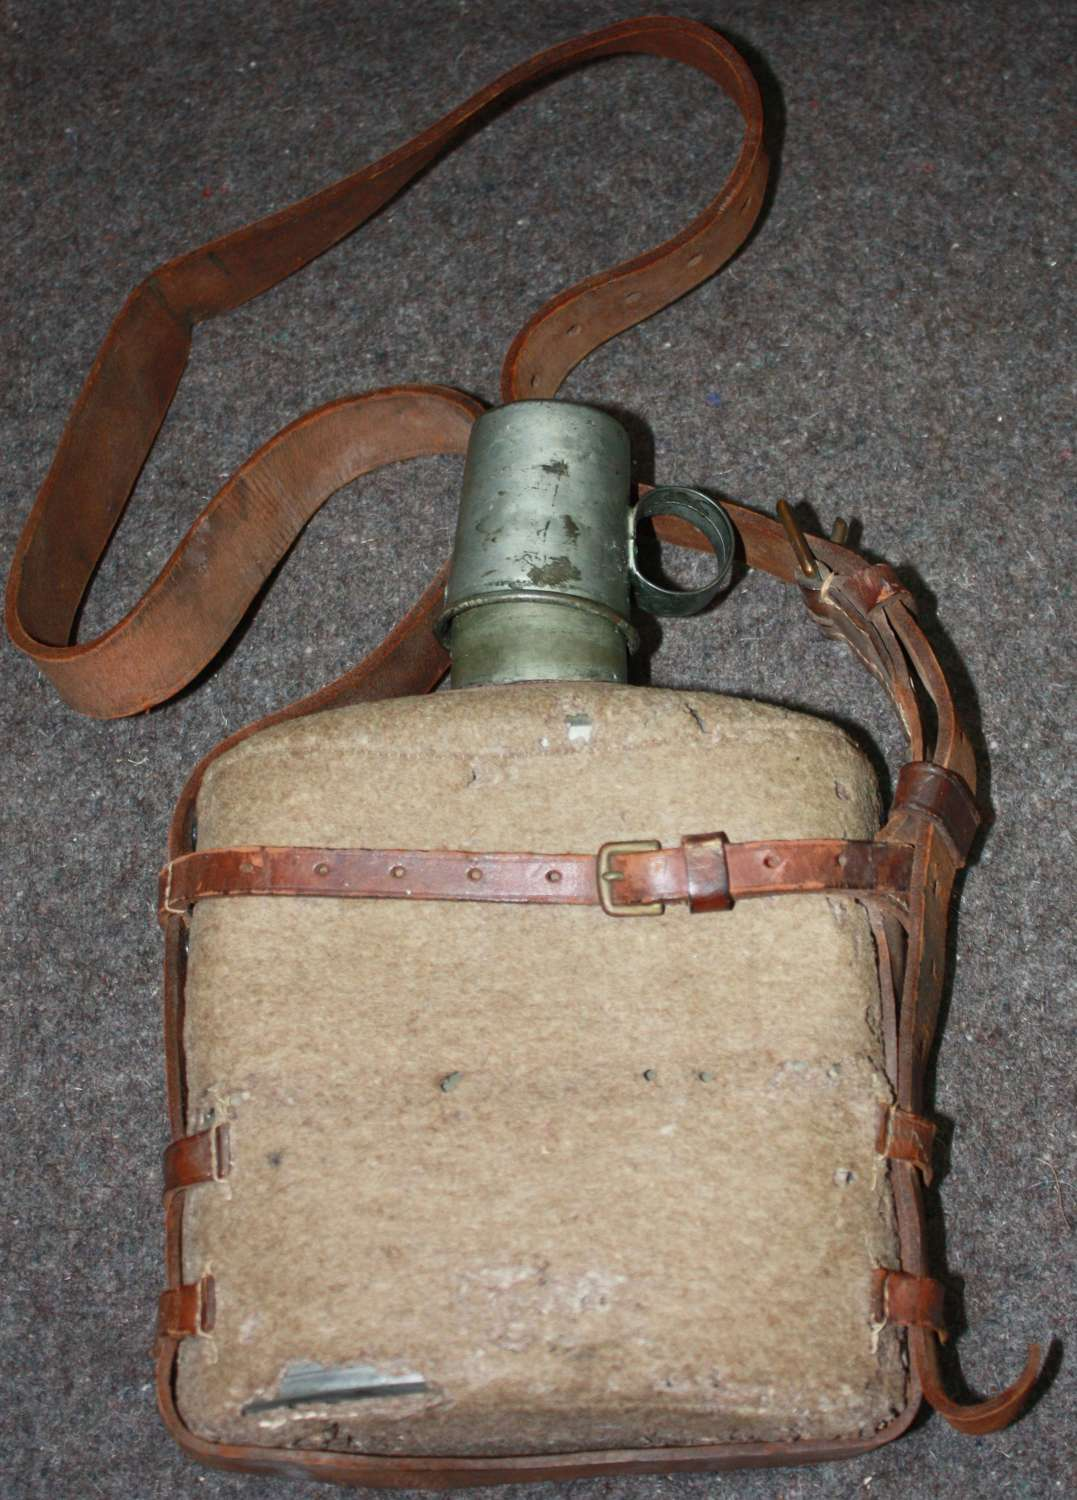 A WWII PERIOD MEDICS WATER BOTTLE AND AM CUP